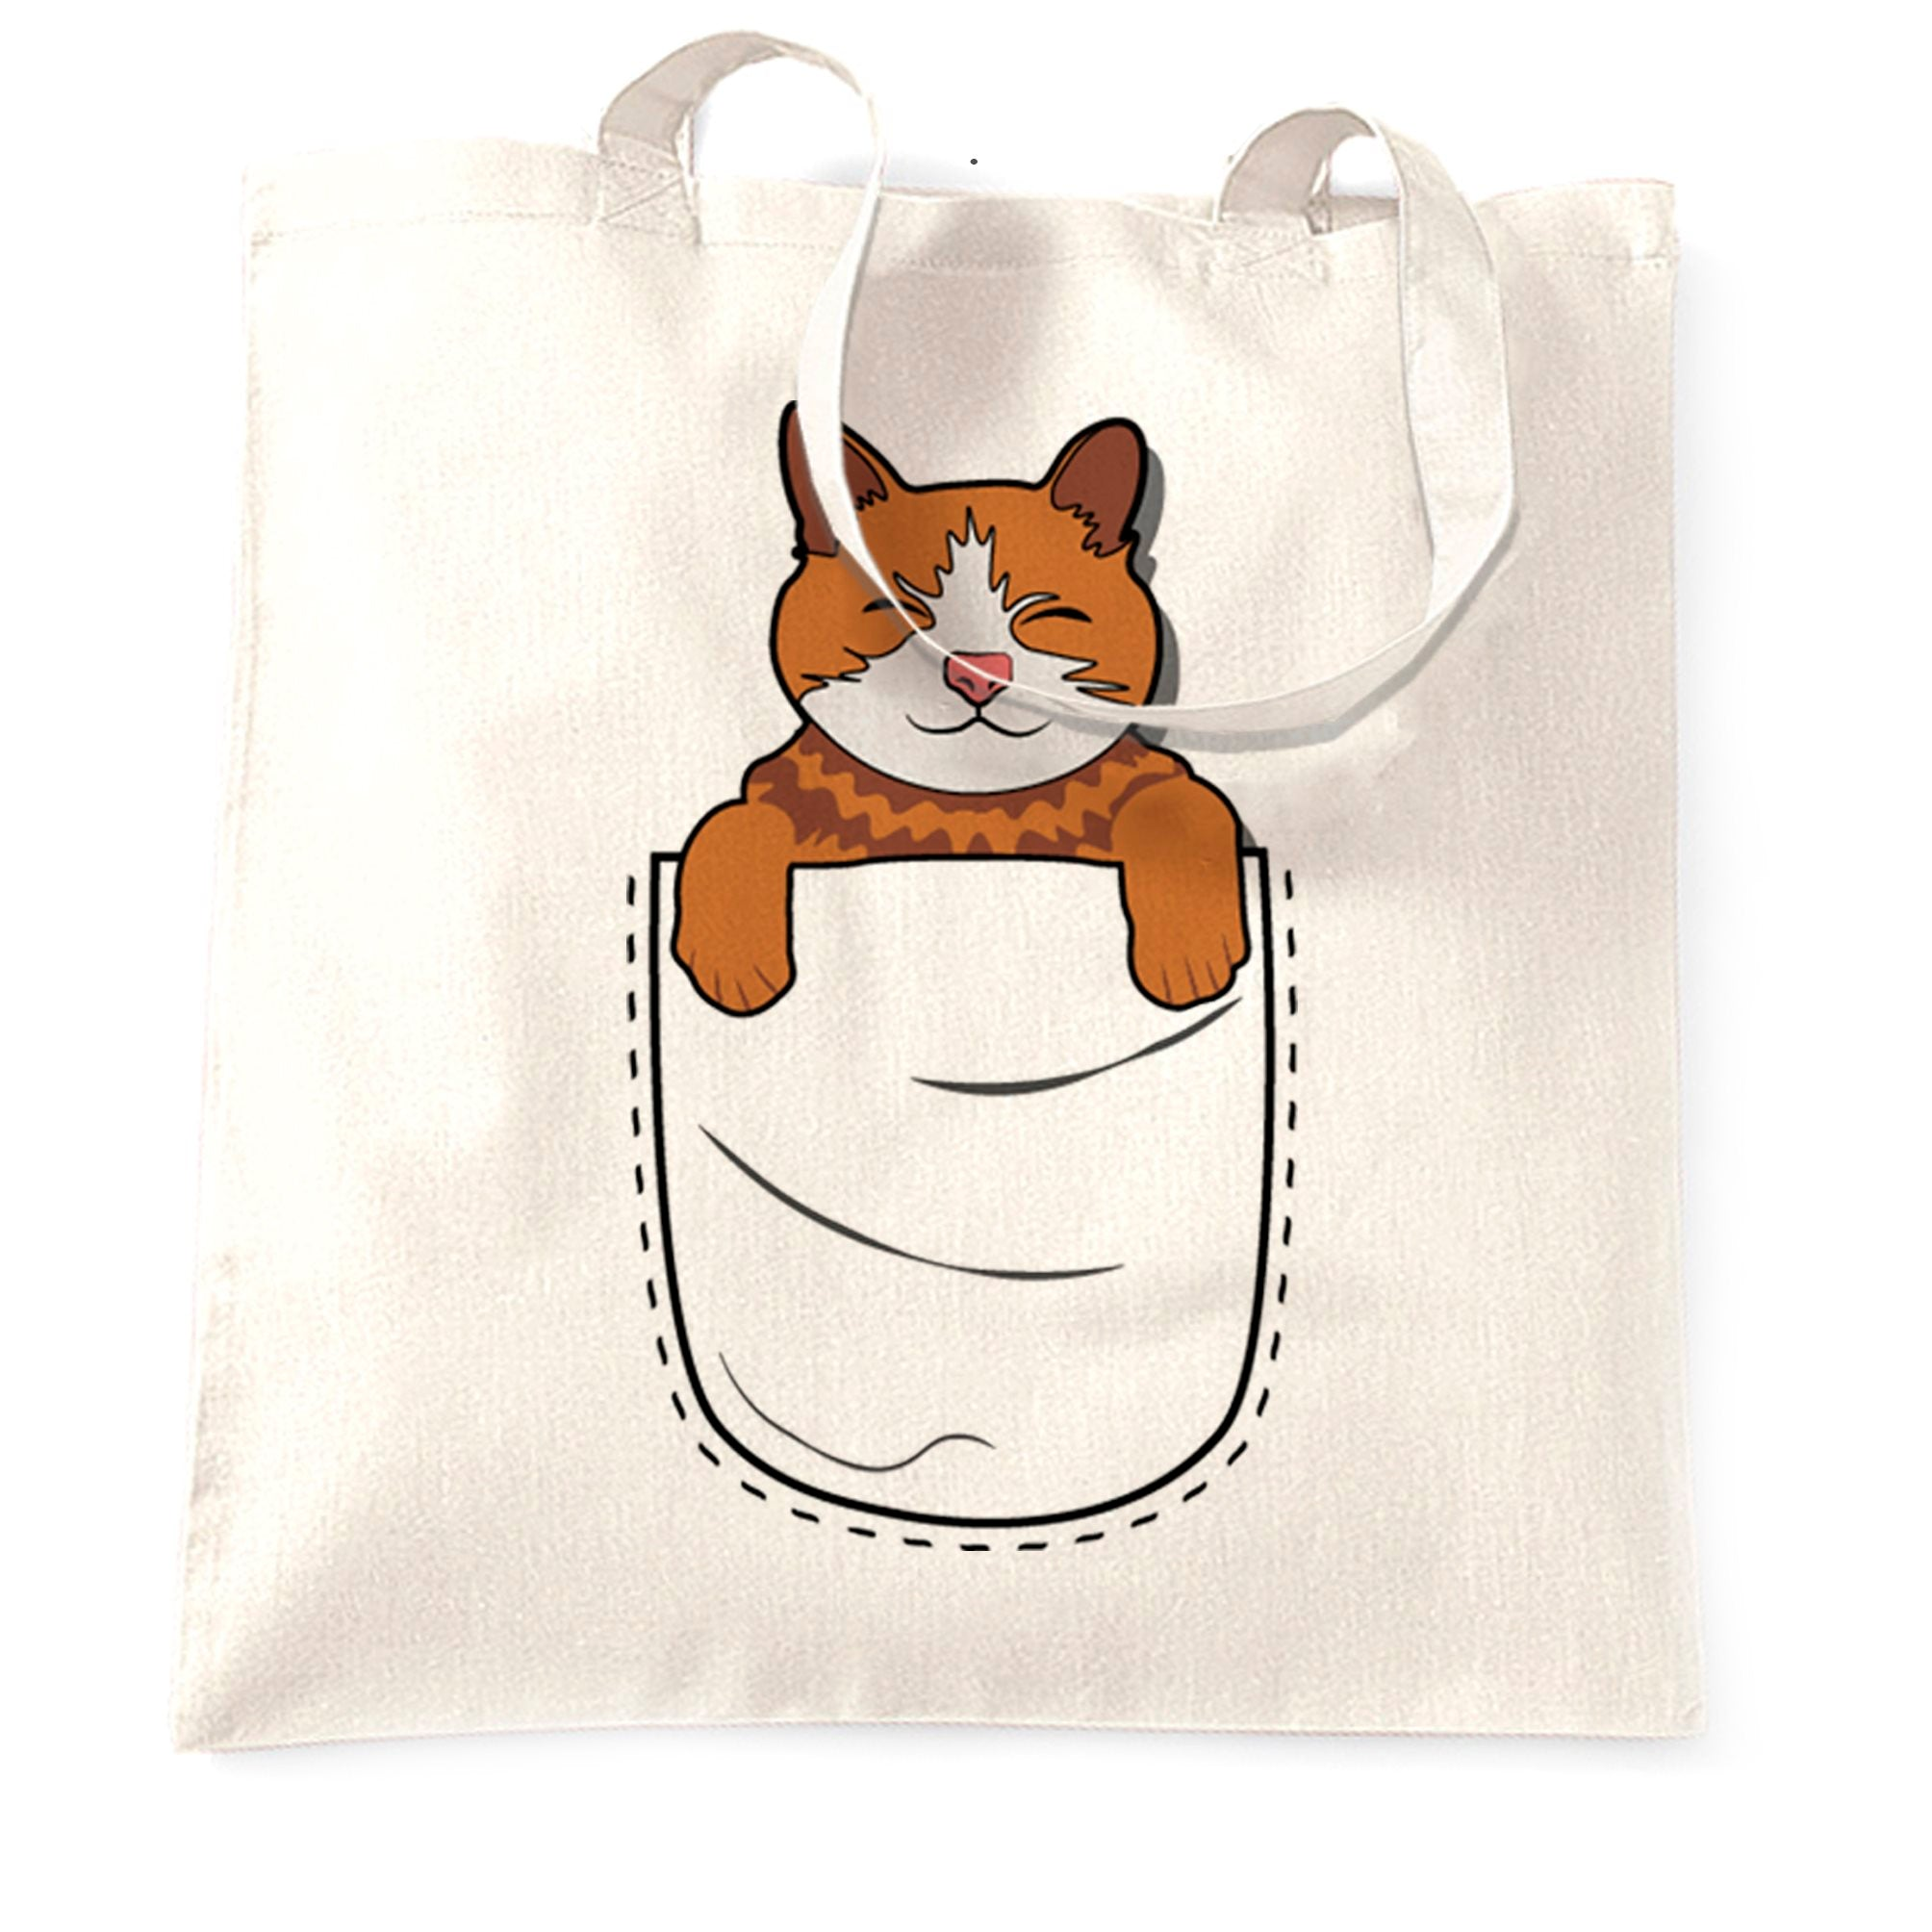 Funny Cute Cat Tote Bag Kitten in Pocket